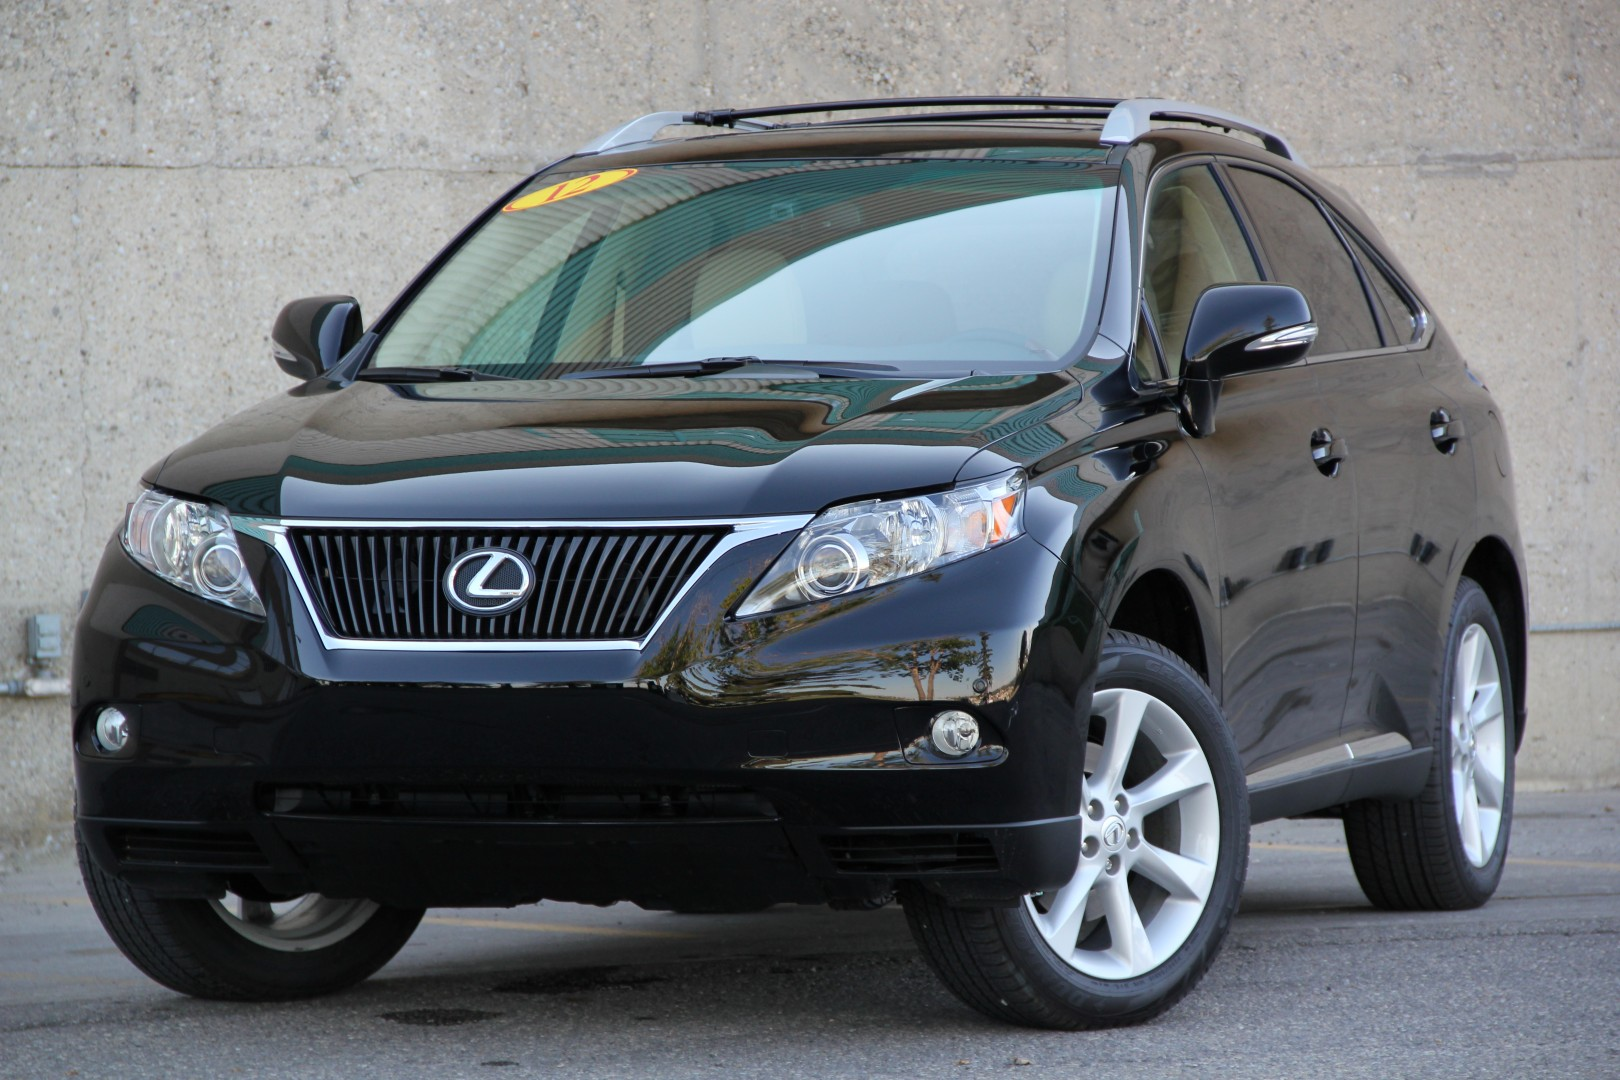 2012 lexus rx350 awd ultra premium park assist low miles envision auto. Black Bedroom Furniture Sets. Home Design Ideas